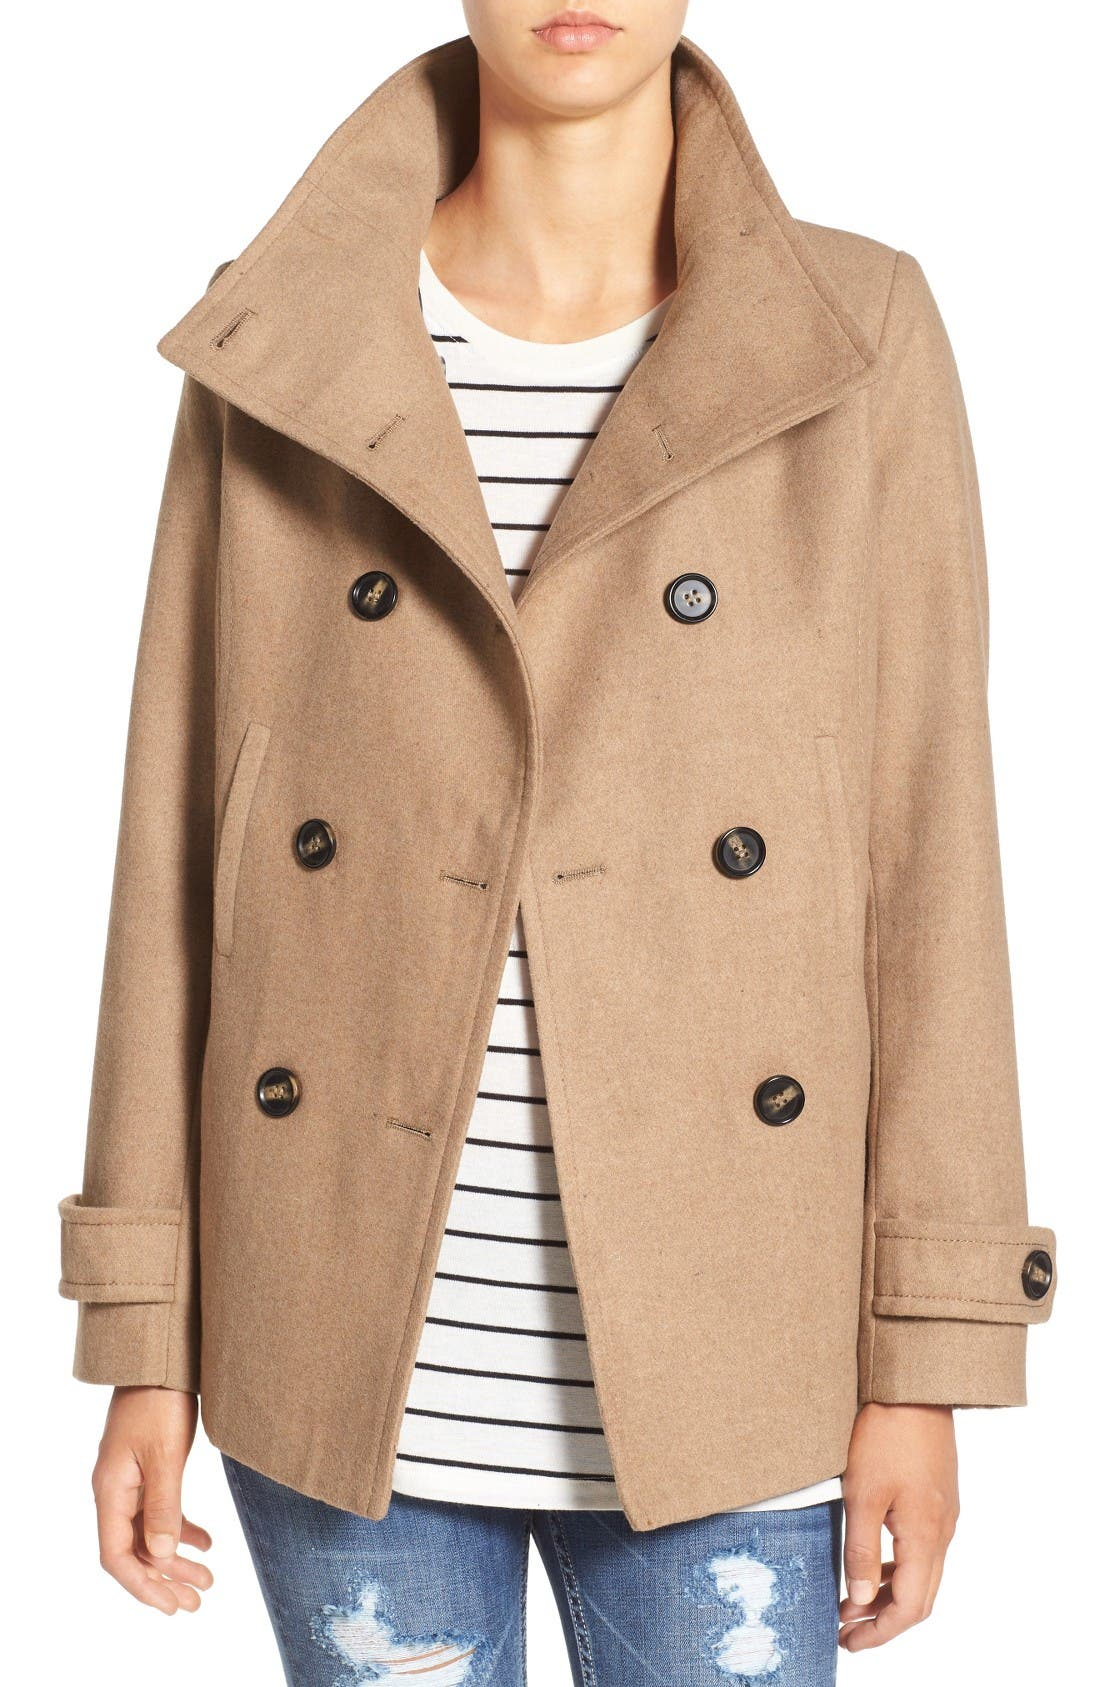 winter coats for juniors tradingbasis